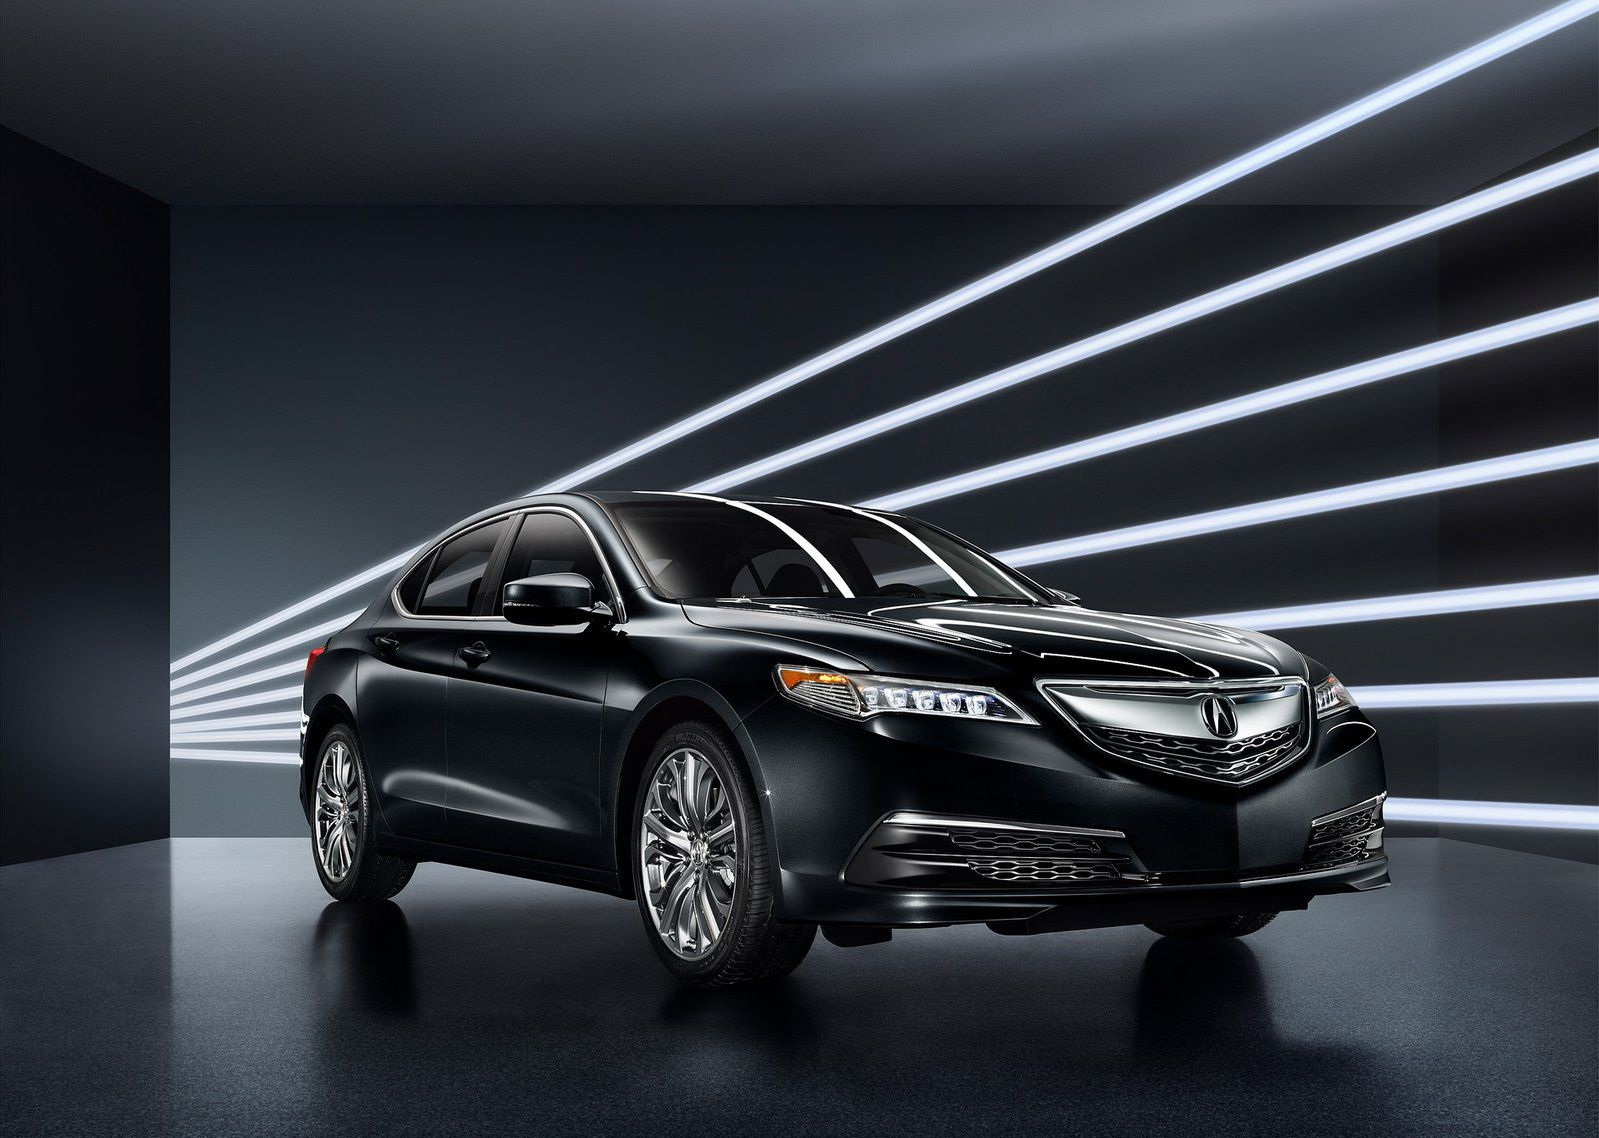 2015 Acura TLX Price, Review, Specs, 060 Acura tlx